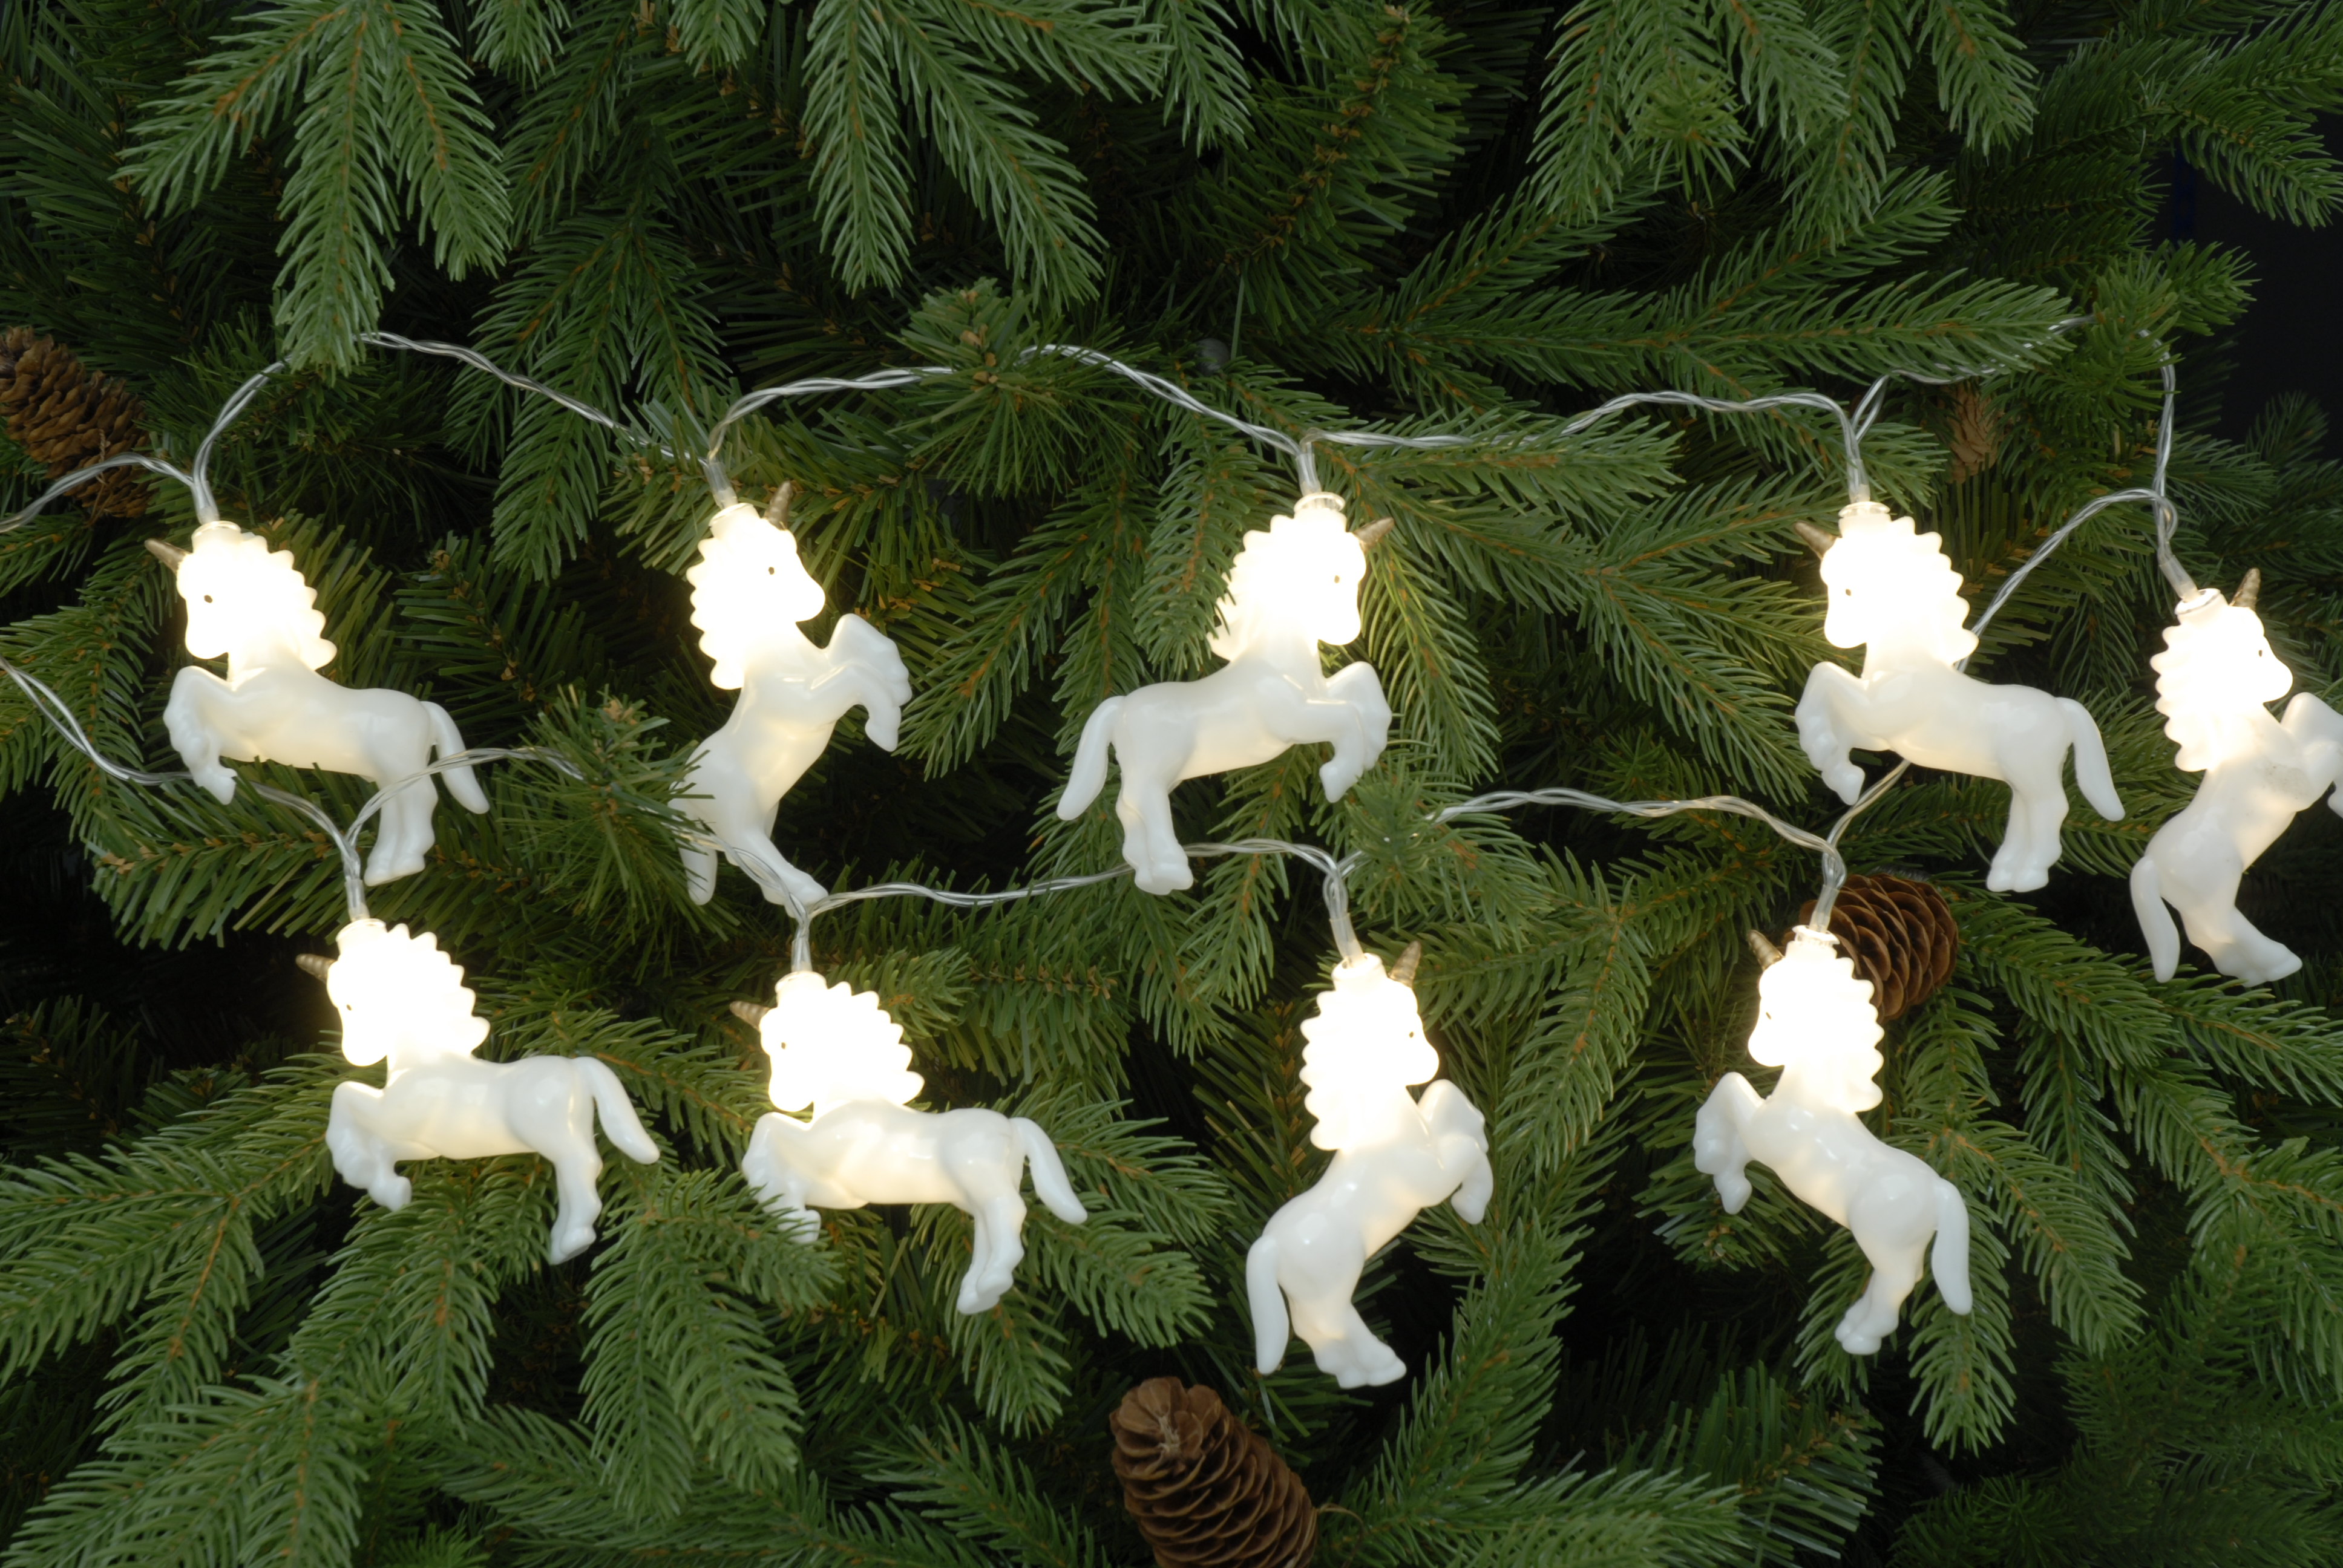 10 gorgeous white unicorns as a string of lights